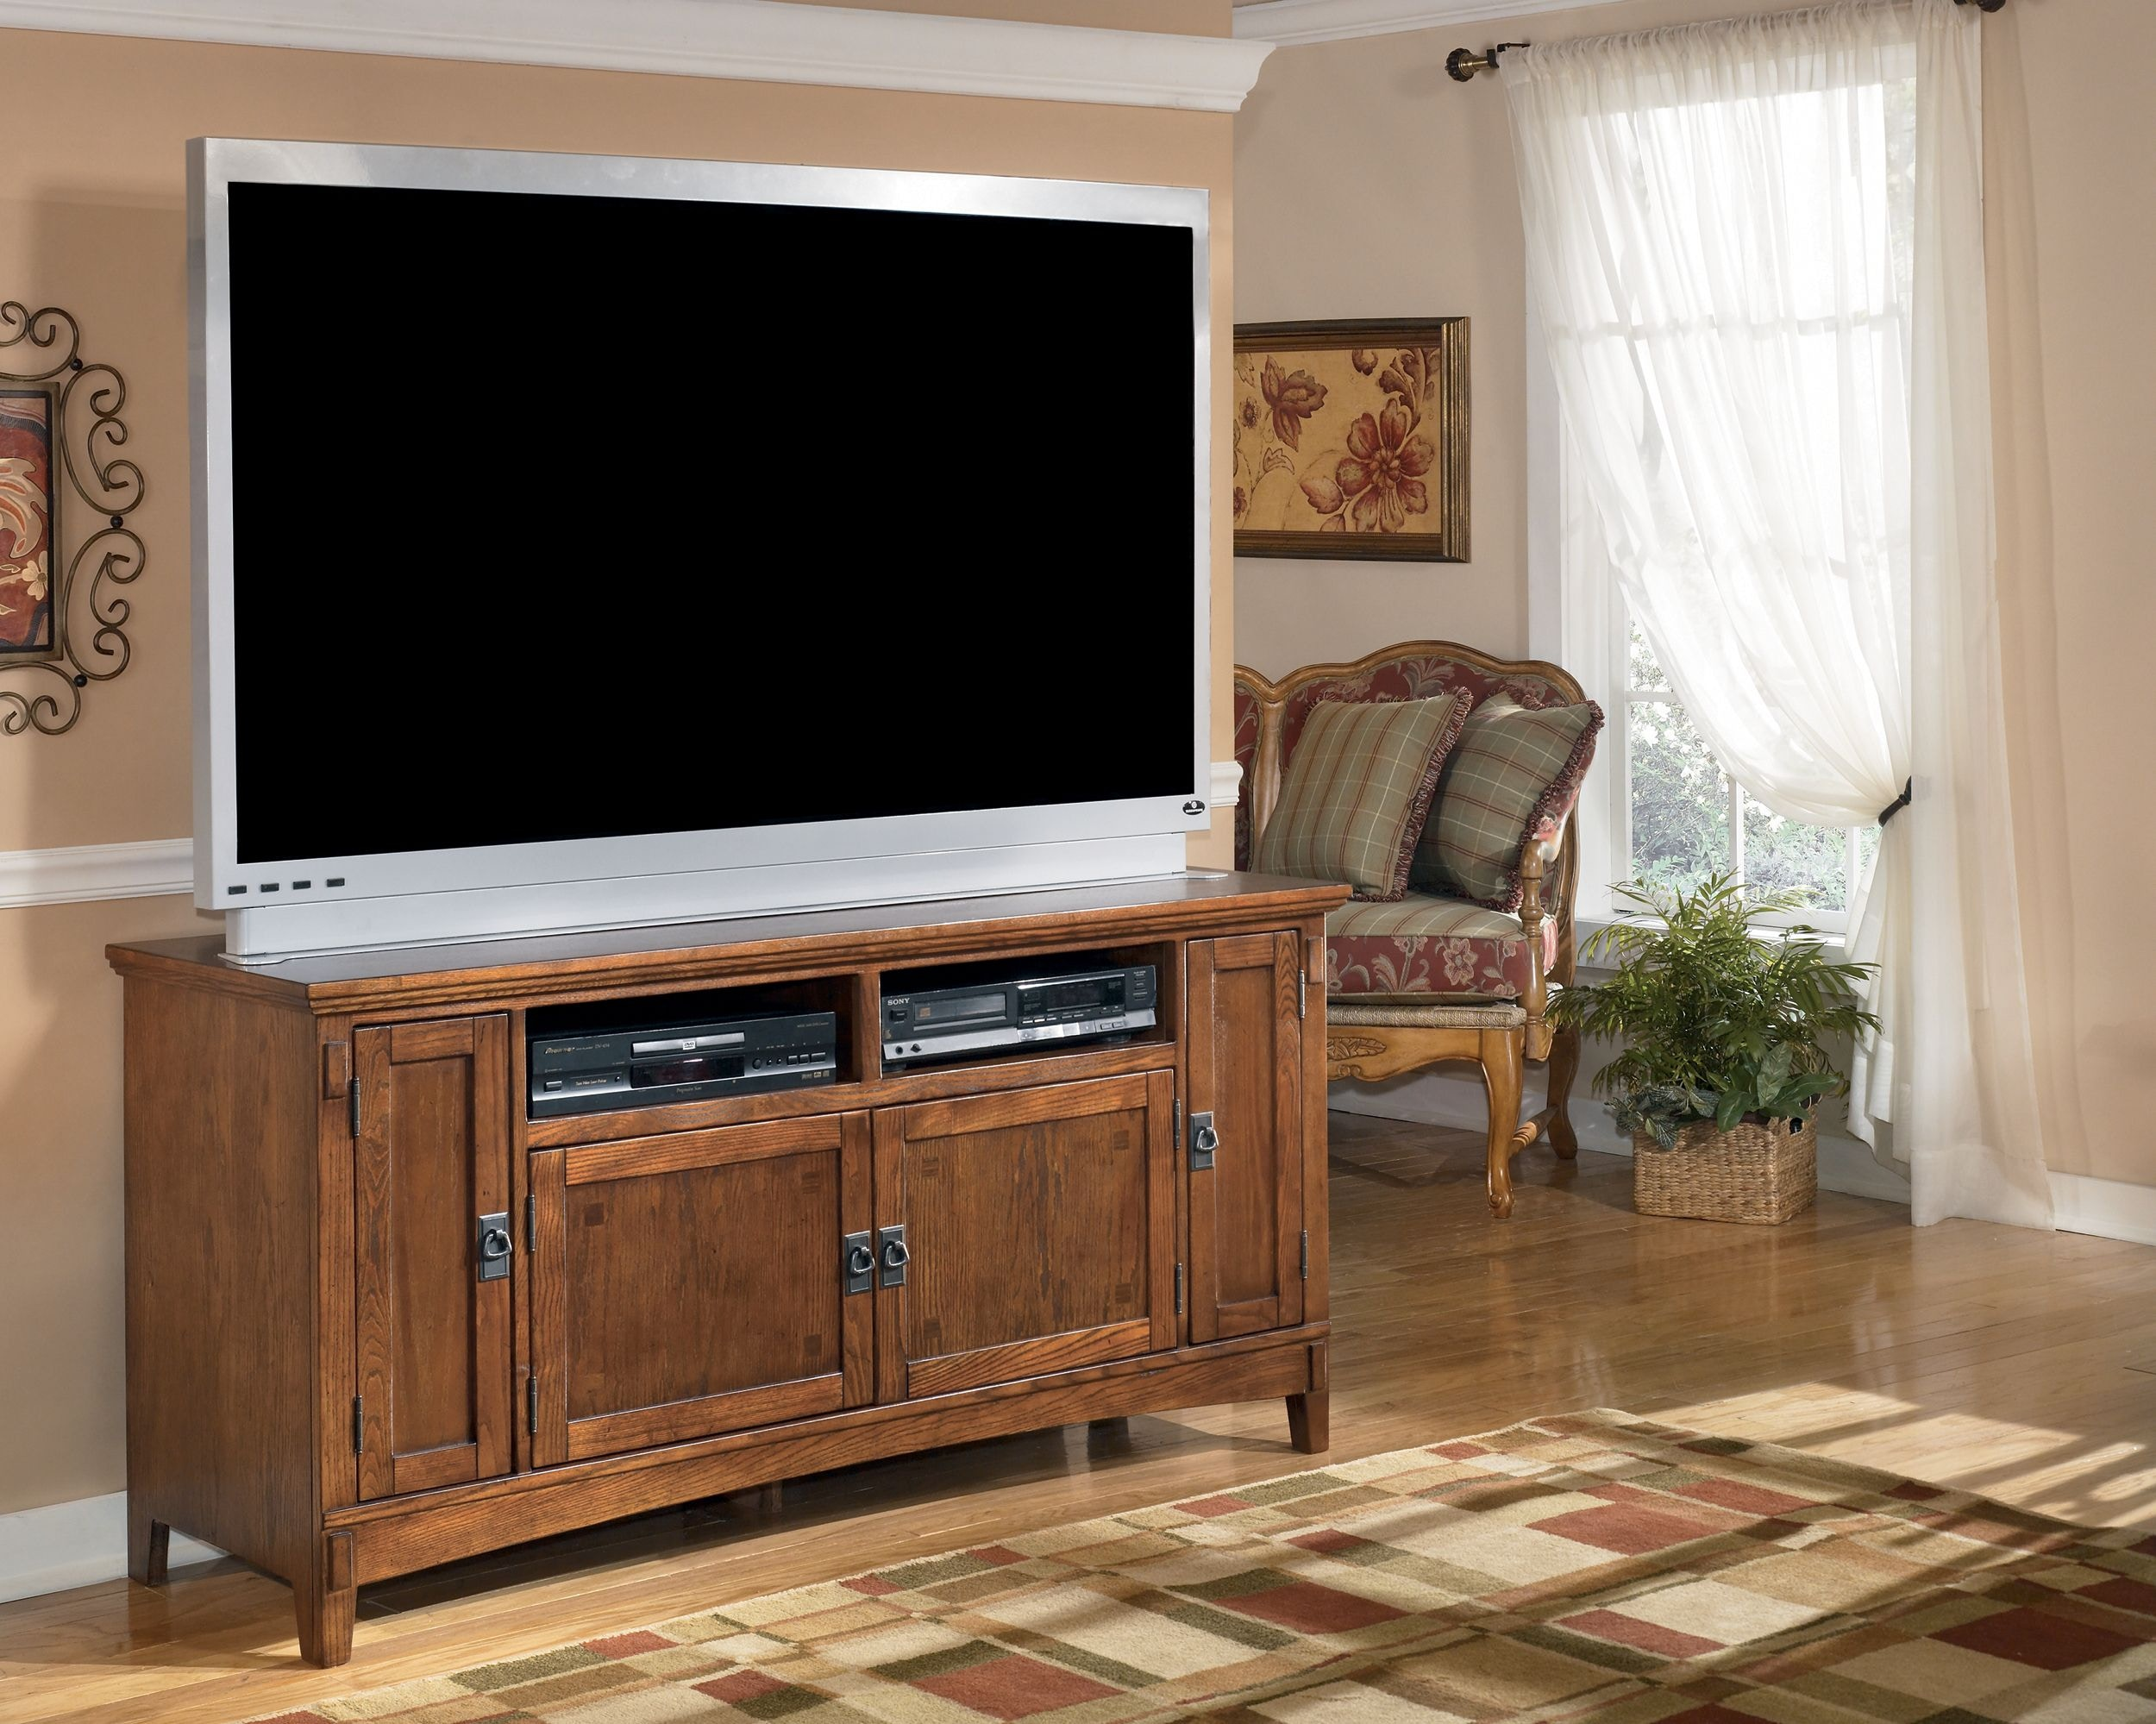 Signature Design By Ashley Home Entertainment Large TV Stand W319 38   Turner  Furniture Company   Avon Park And Sebring, FL